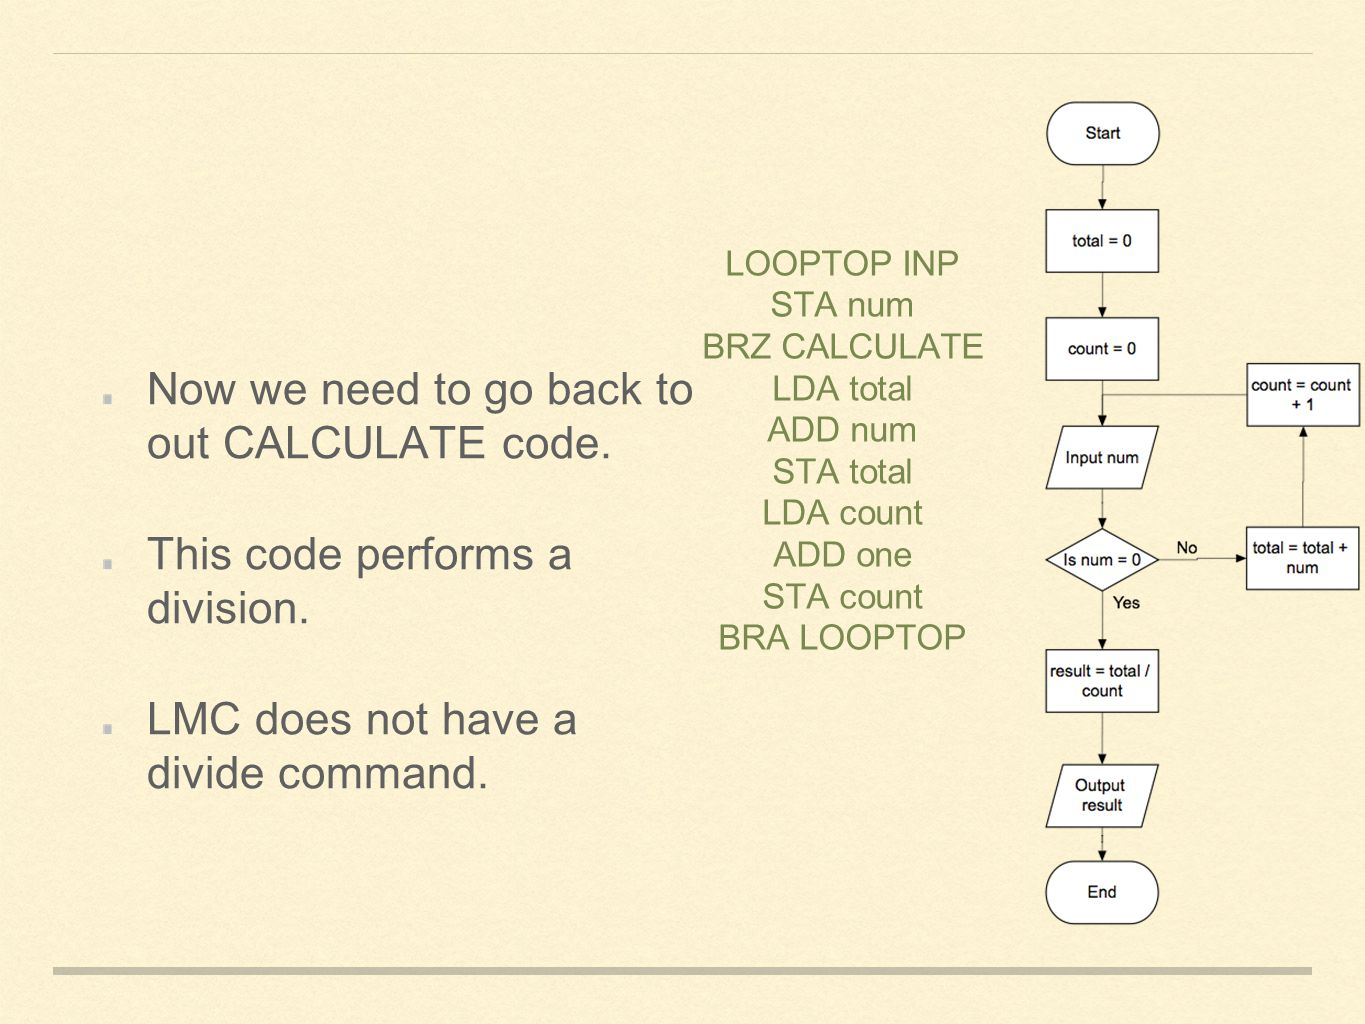 Now we need to go back to out CALCULATE code. This code performs a division. LMC does not have a divide command. LOOPTOP INP STA num BRZ CALCULATE LDA